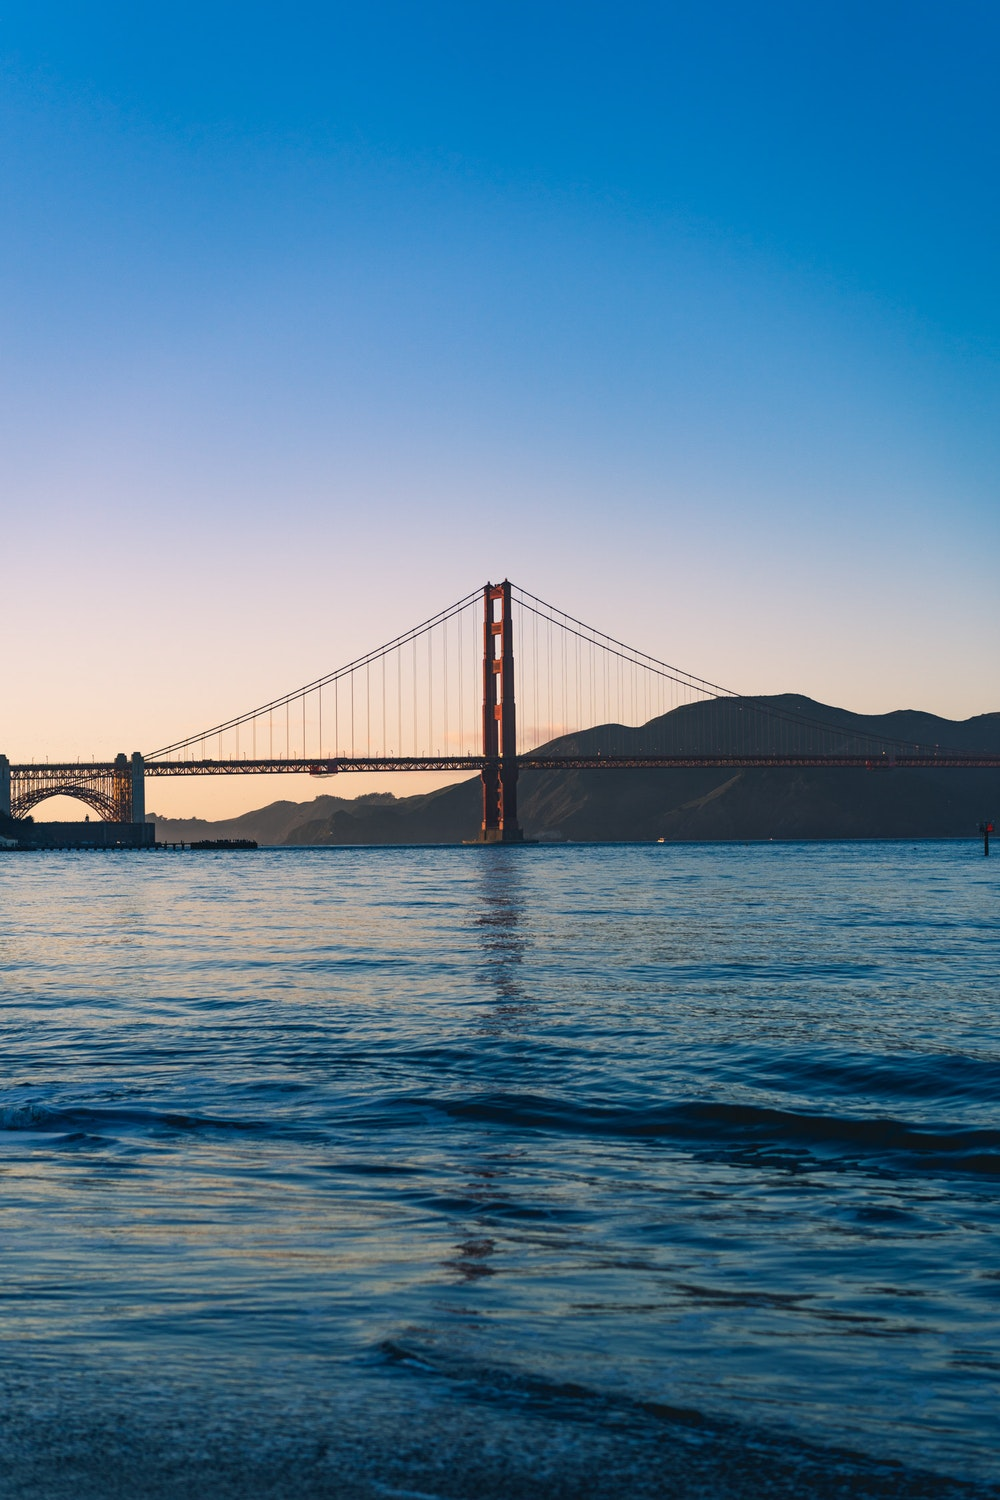 San Francisco is known for the Golden Gate Bridge, one of the city's many icons. Enjoy this golden hour shot of the bridge as the sky turns colors.